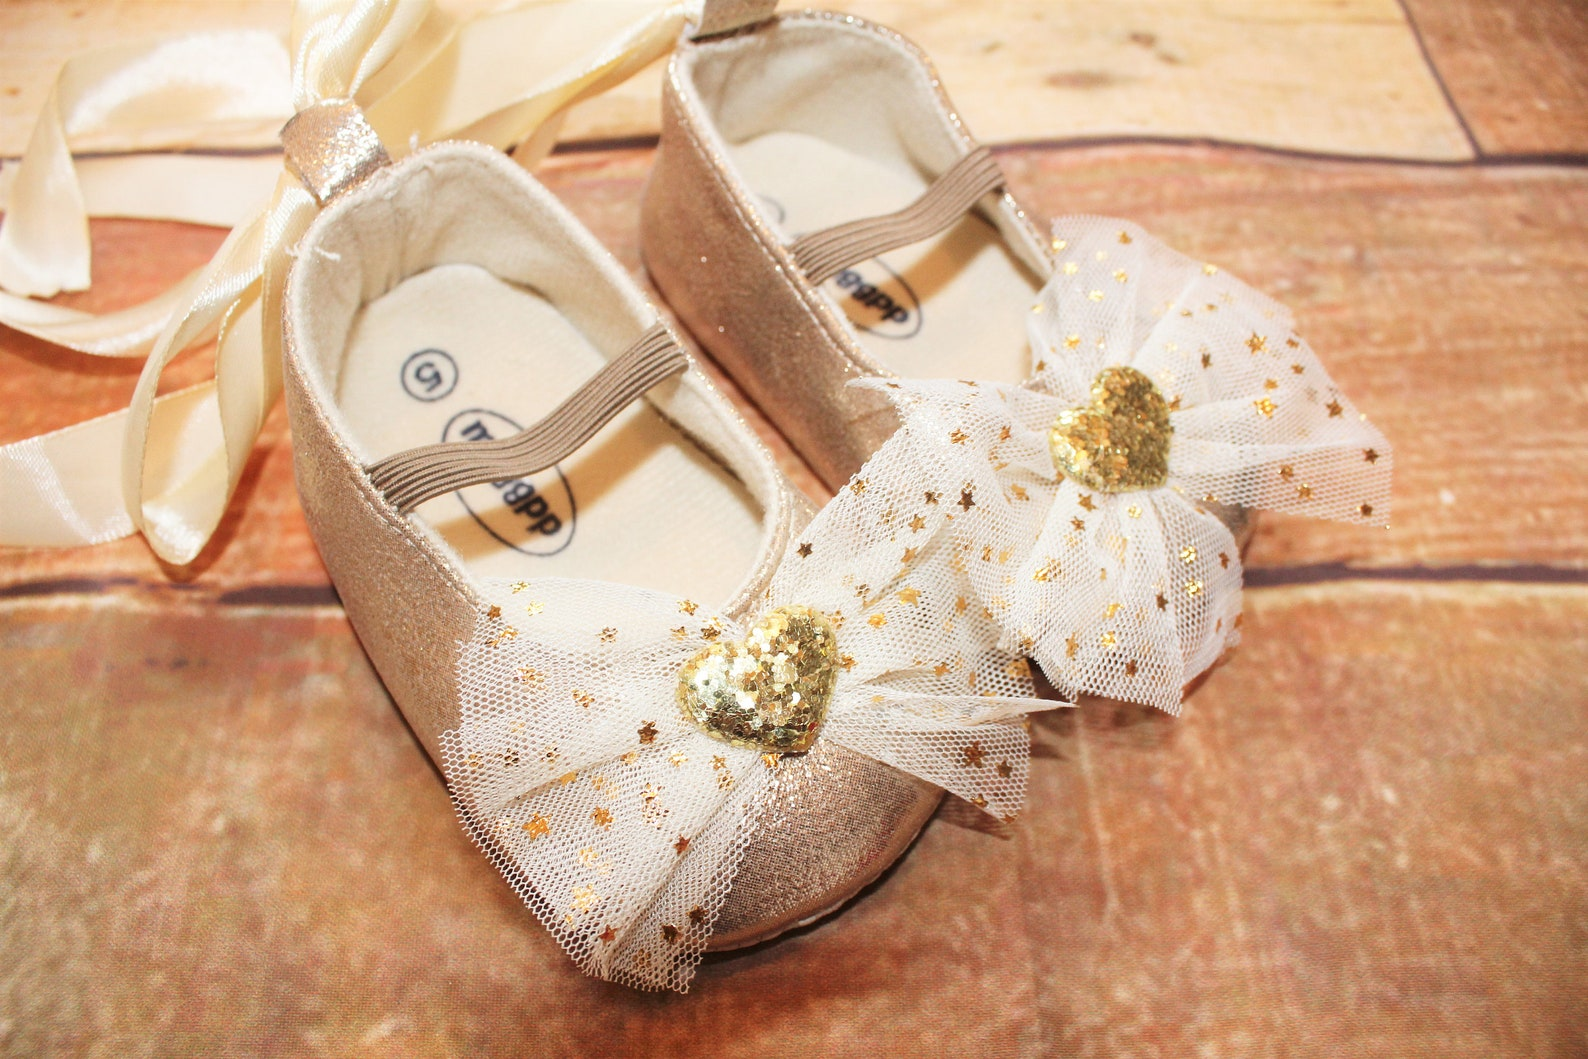 baby girls gold shoes, sparkly, glittery, ballet style, ribbon tie & hearts decoration, cake smash